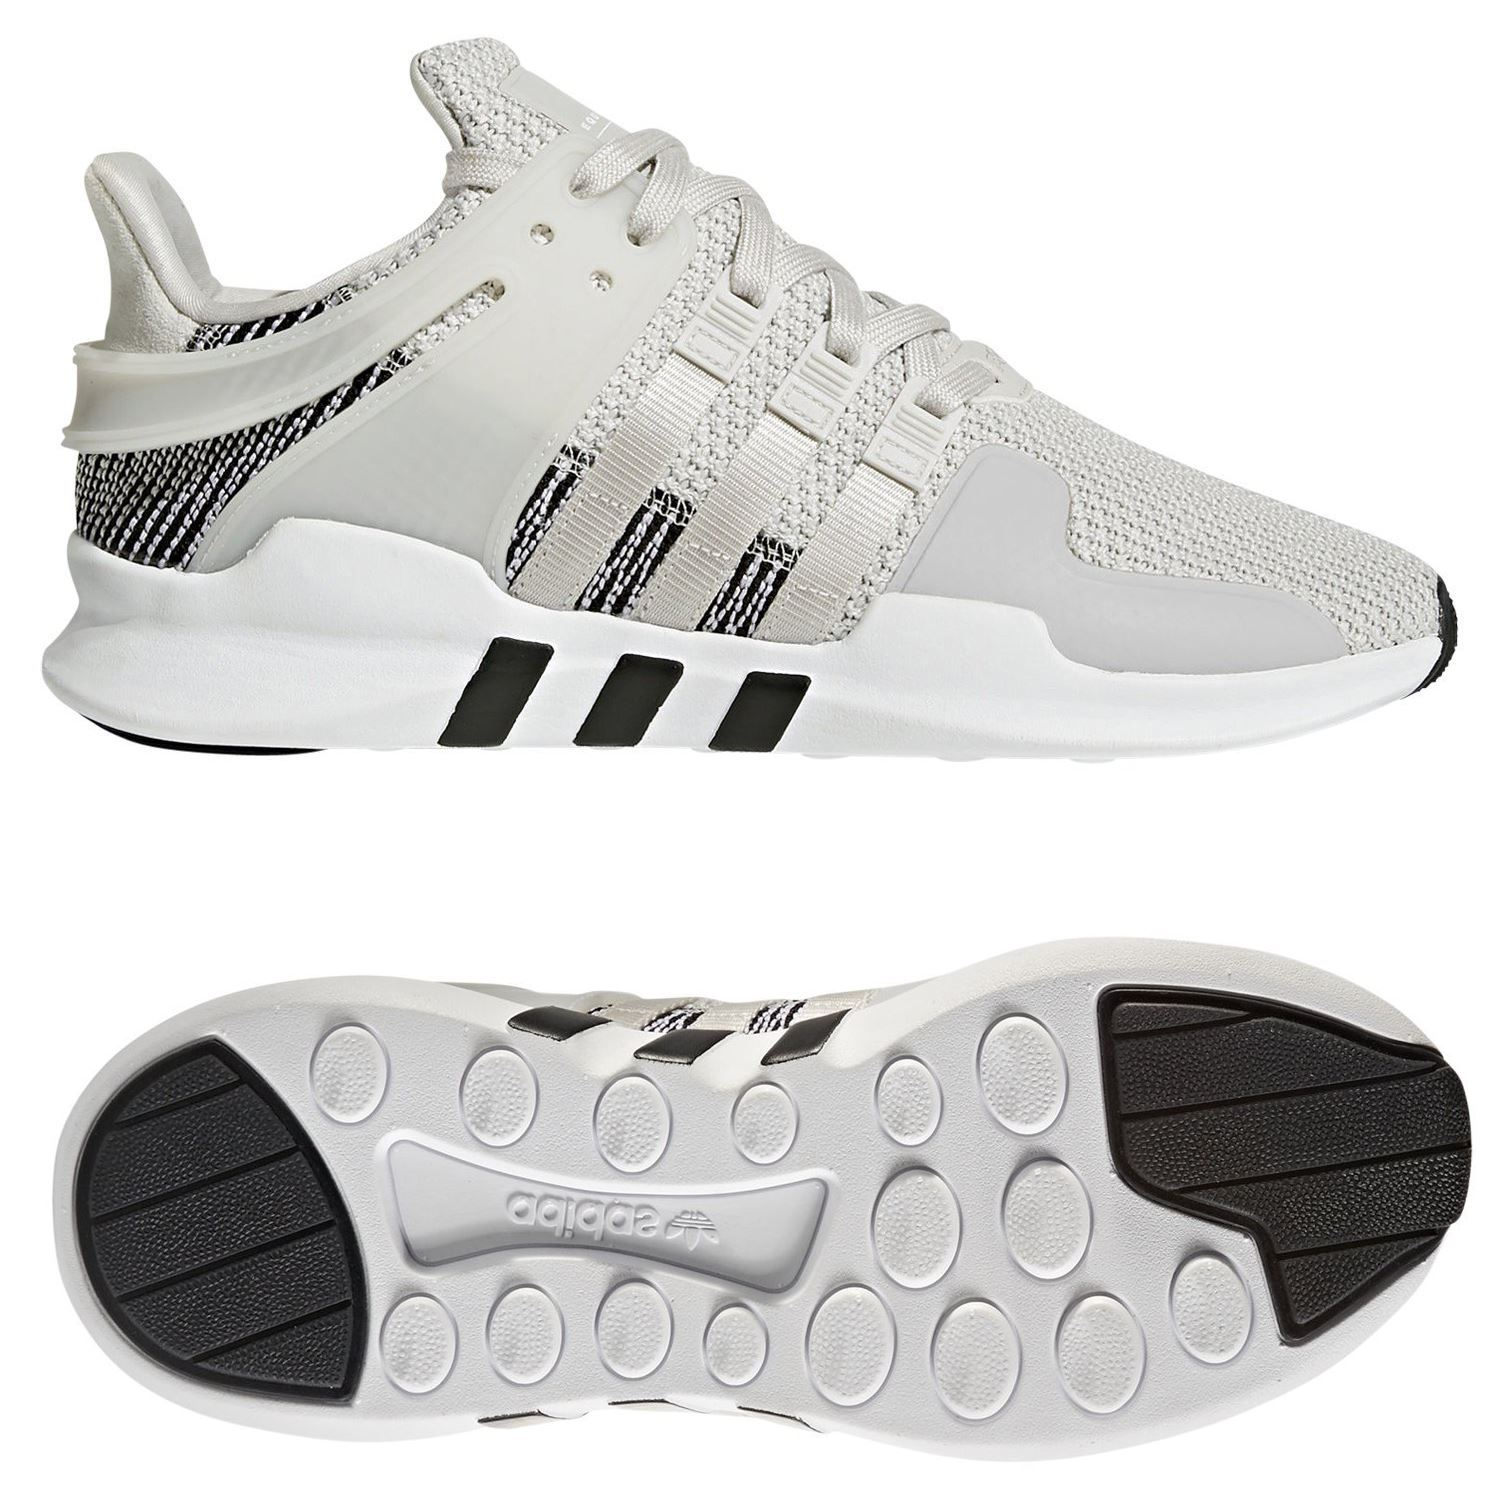 adidas MEN S EQT SUPPORT ADV TRAINERS WHITE SHOES SNEAKERS RUNNING 3  STRIPES GYM 36e2ef0698d57